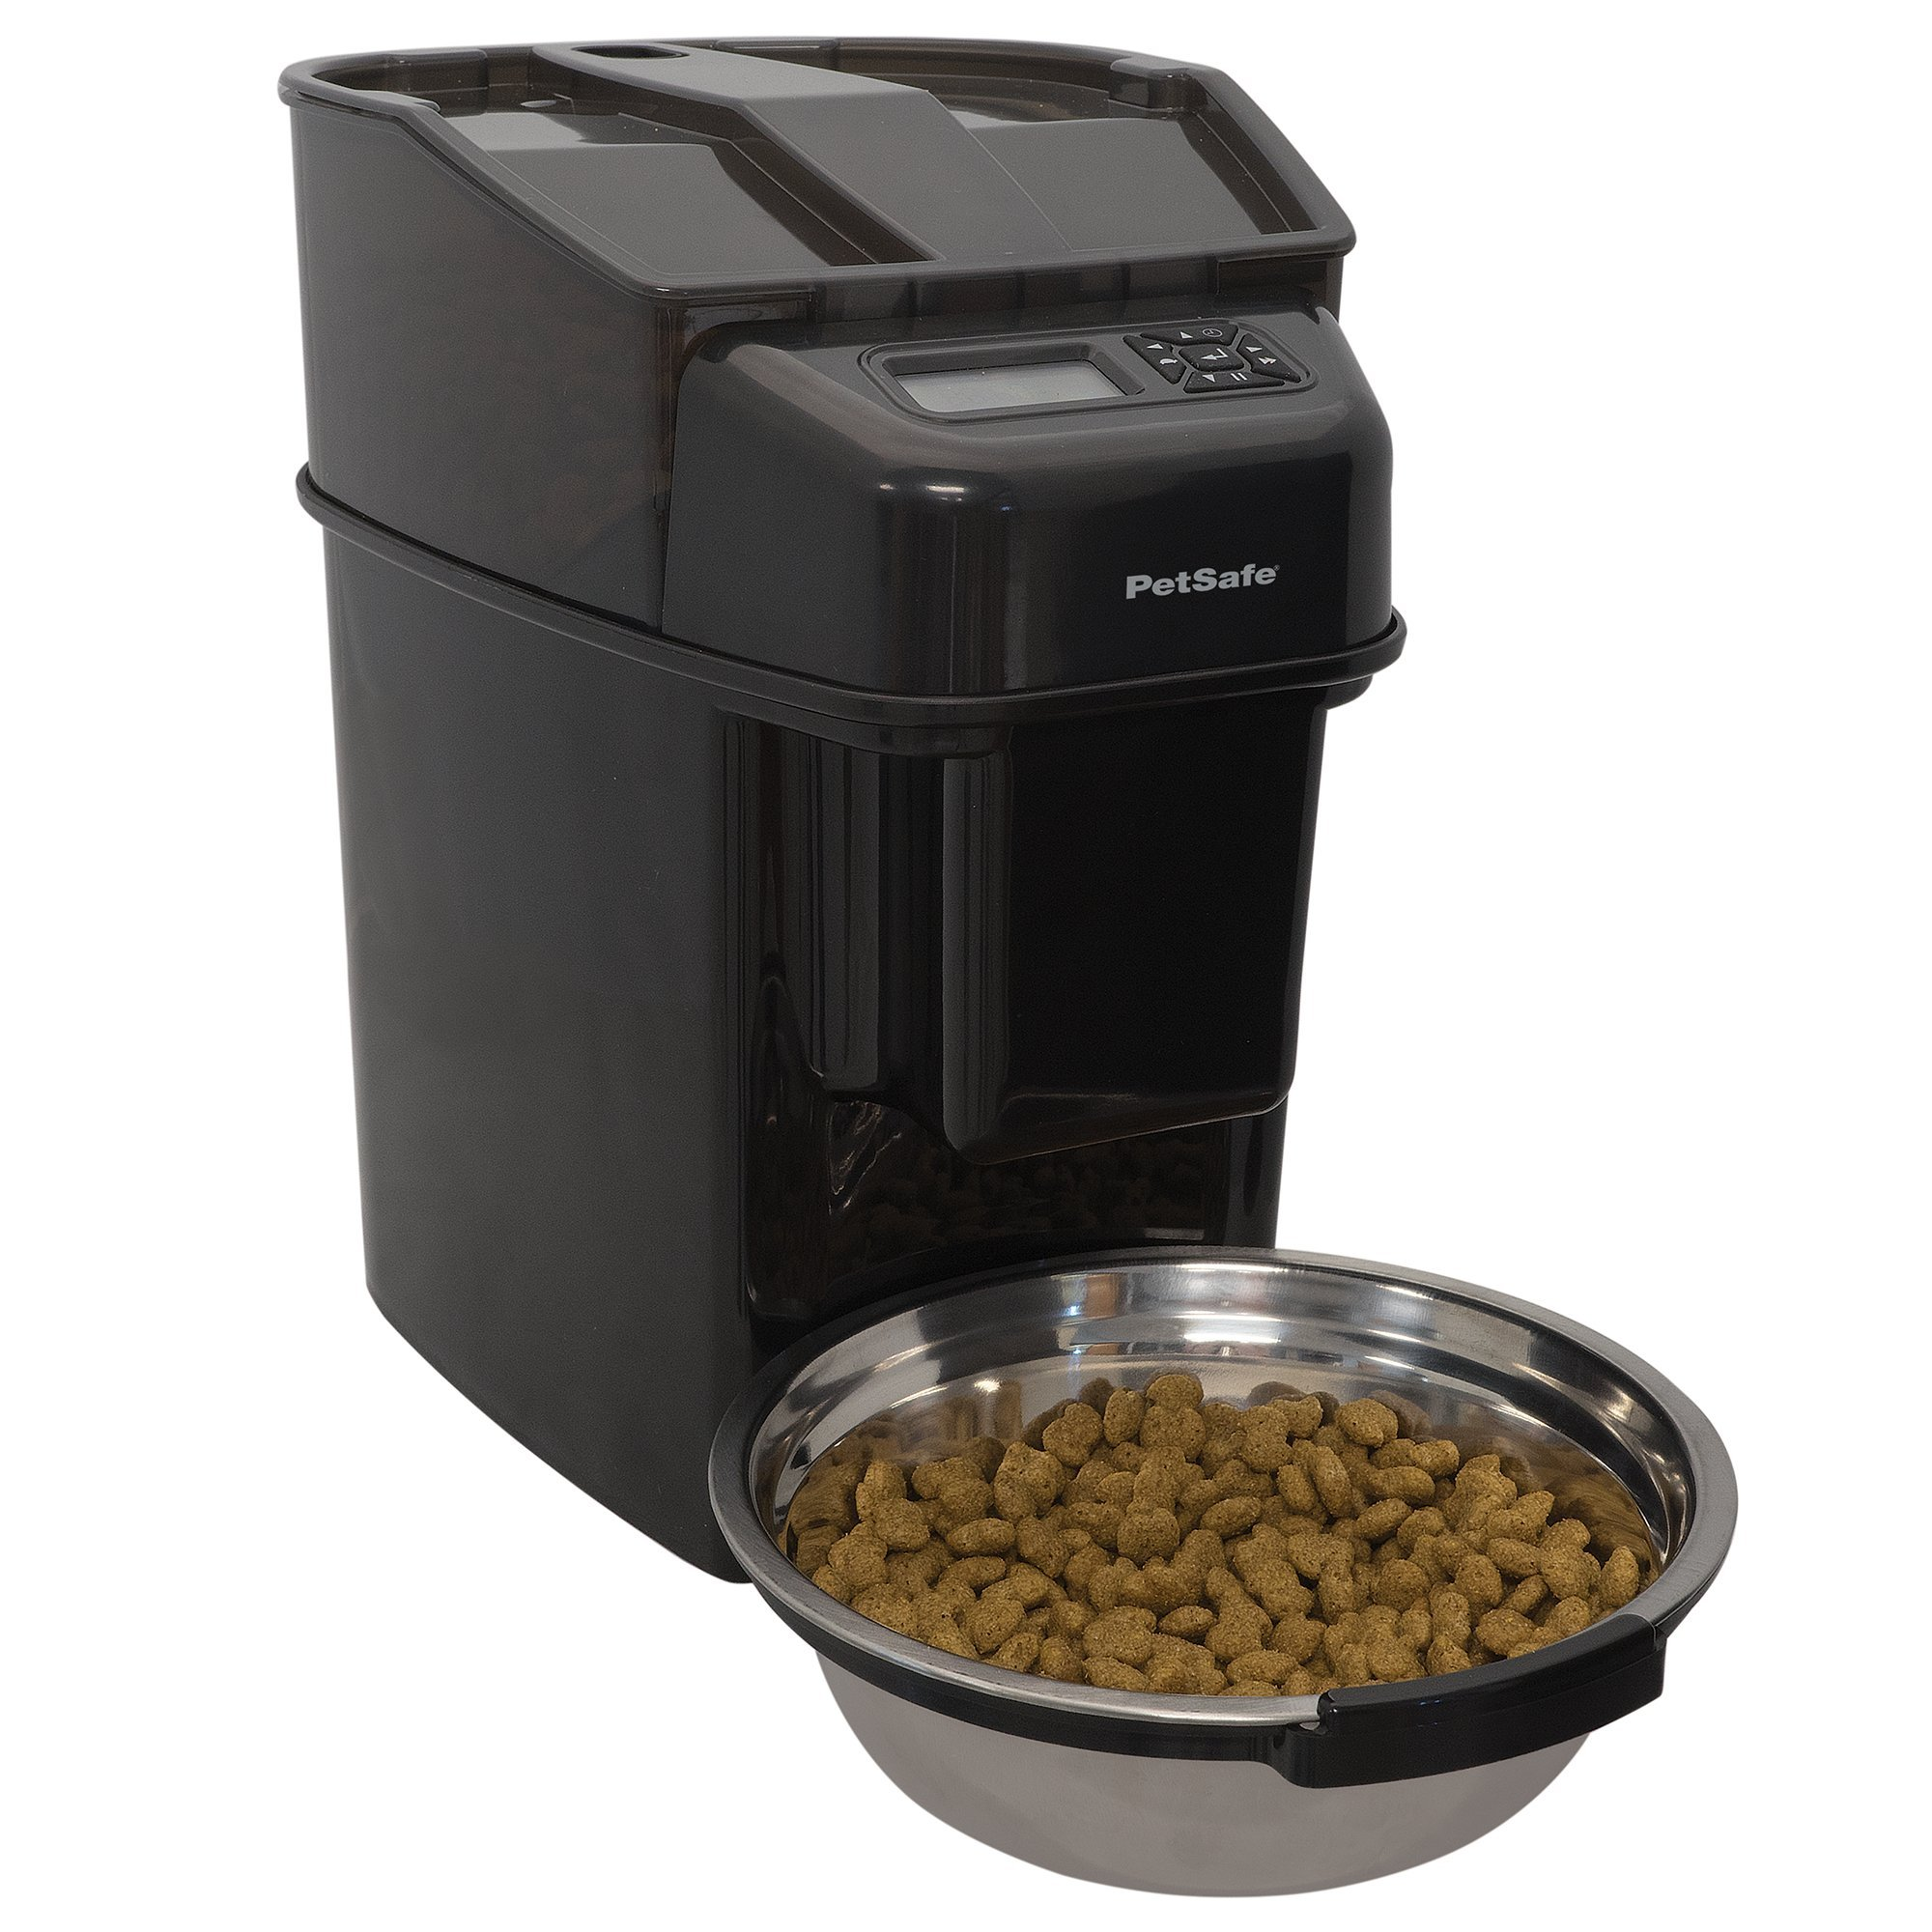 PetSafe Healthy Pet Simply Feed, Automatic Dog and Cat Feeder, 24 Cups, One Size Fits All, Black